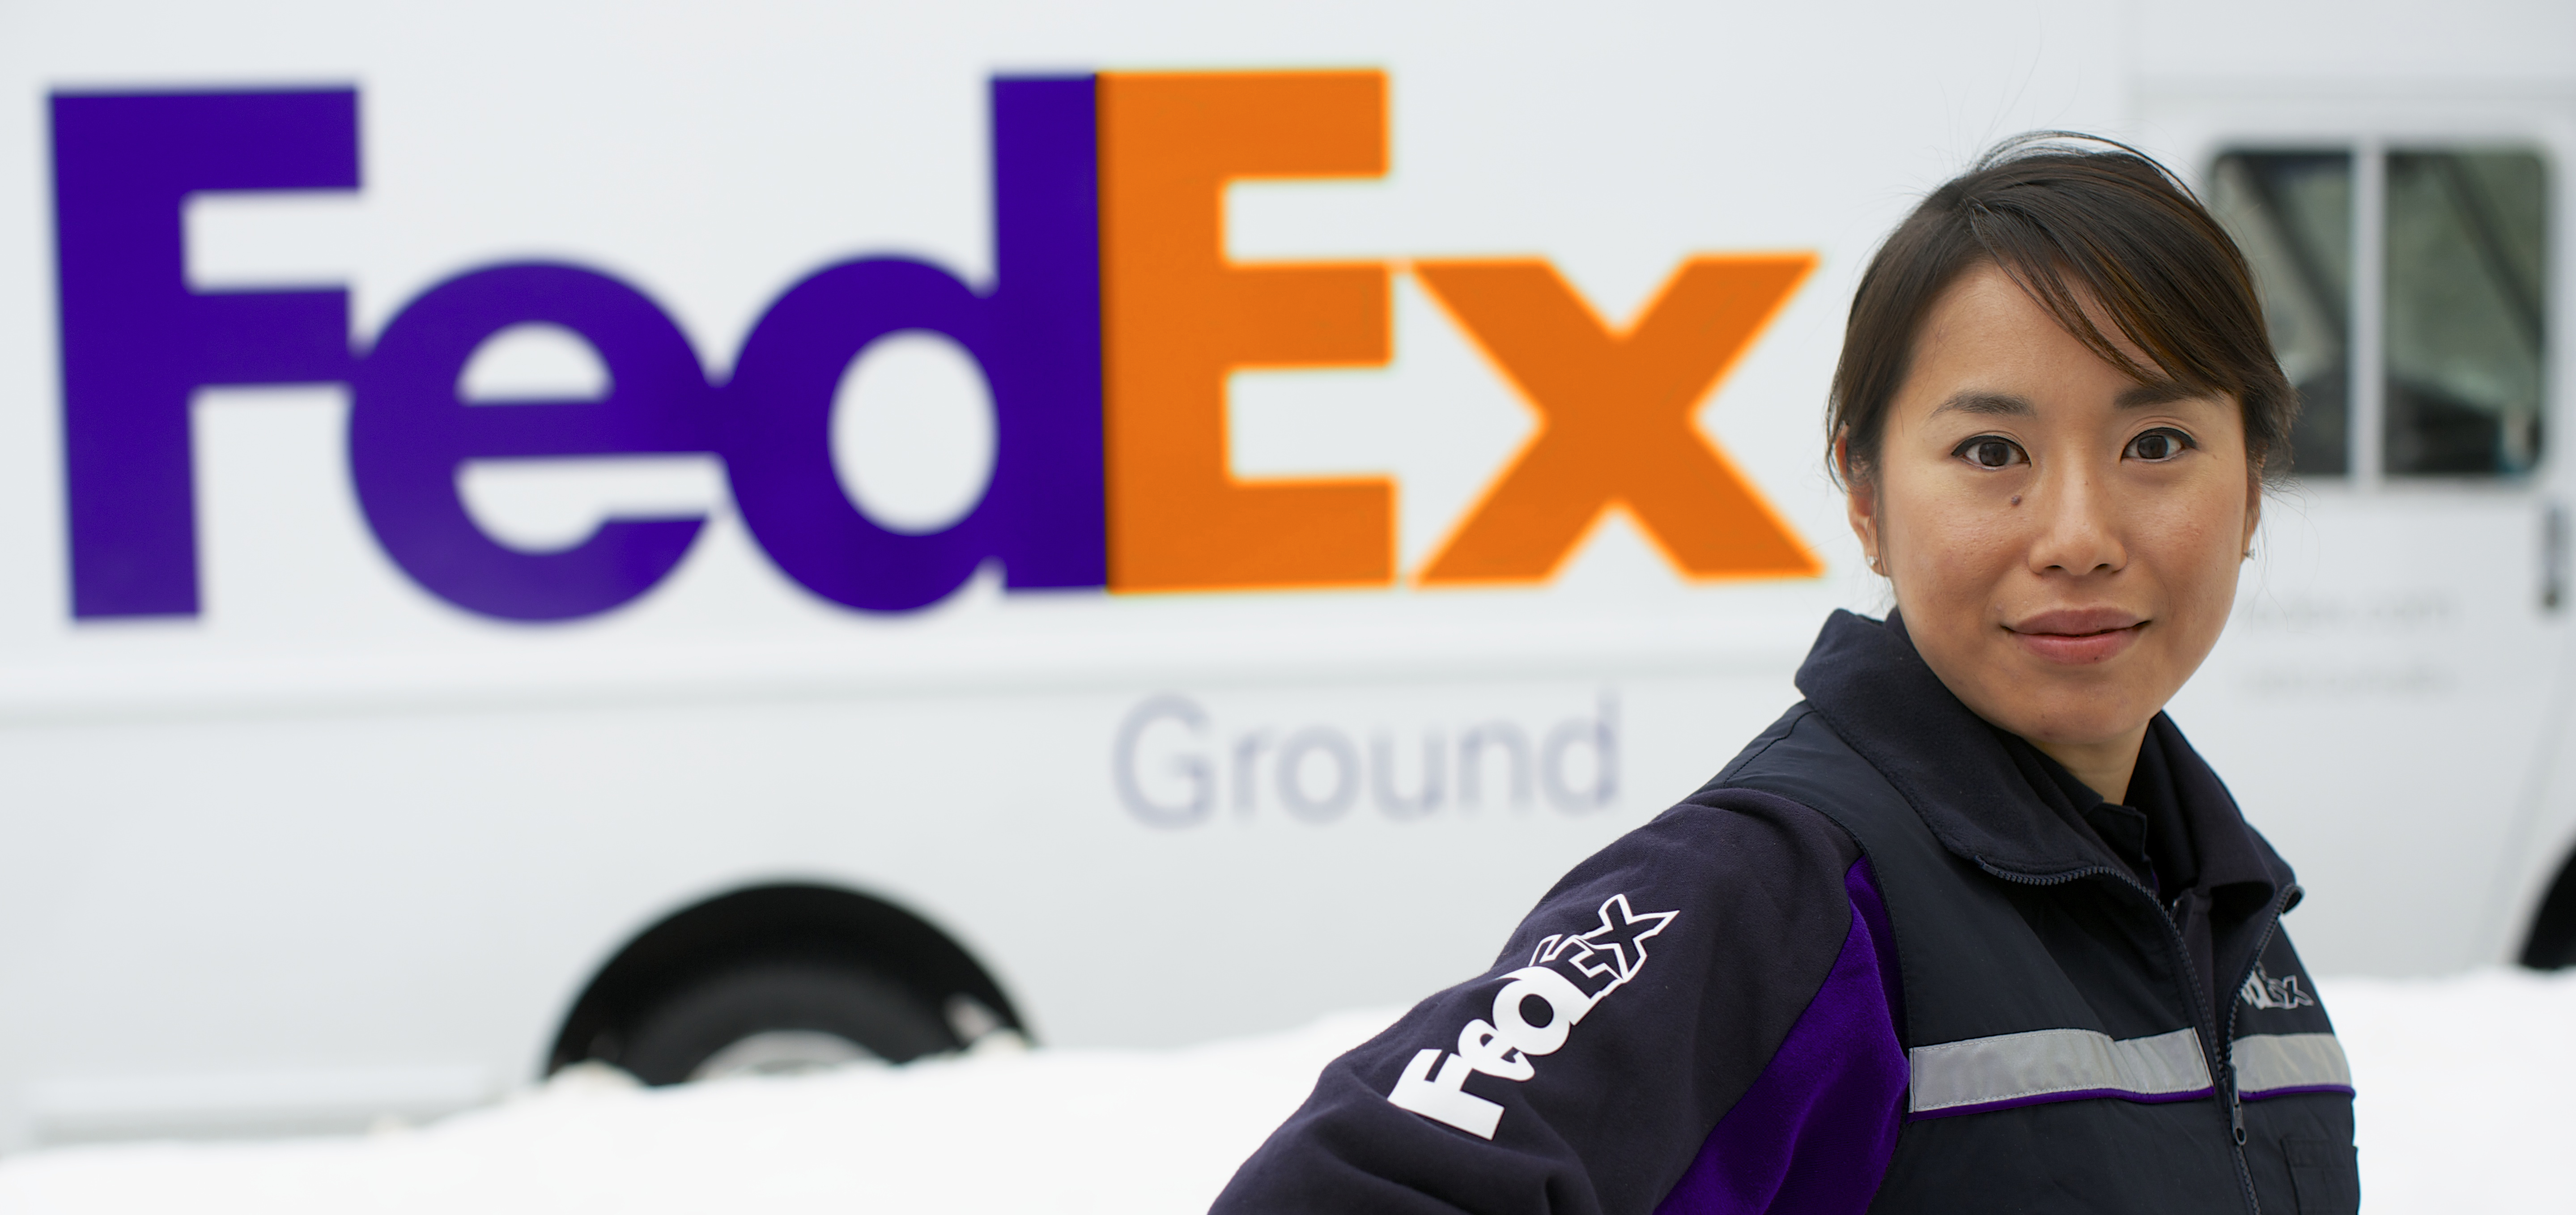 Fedex Ground image second